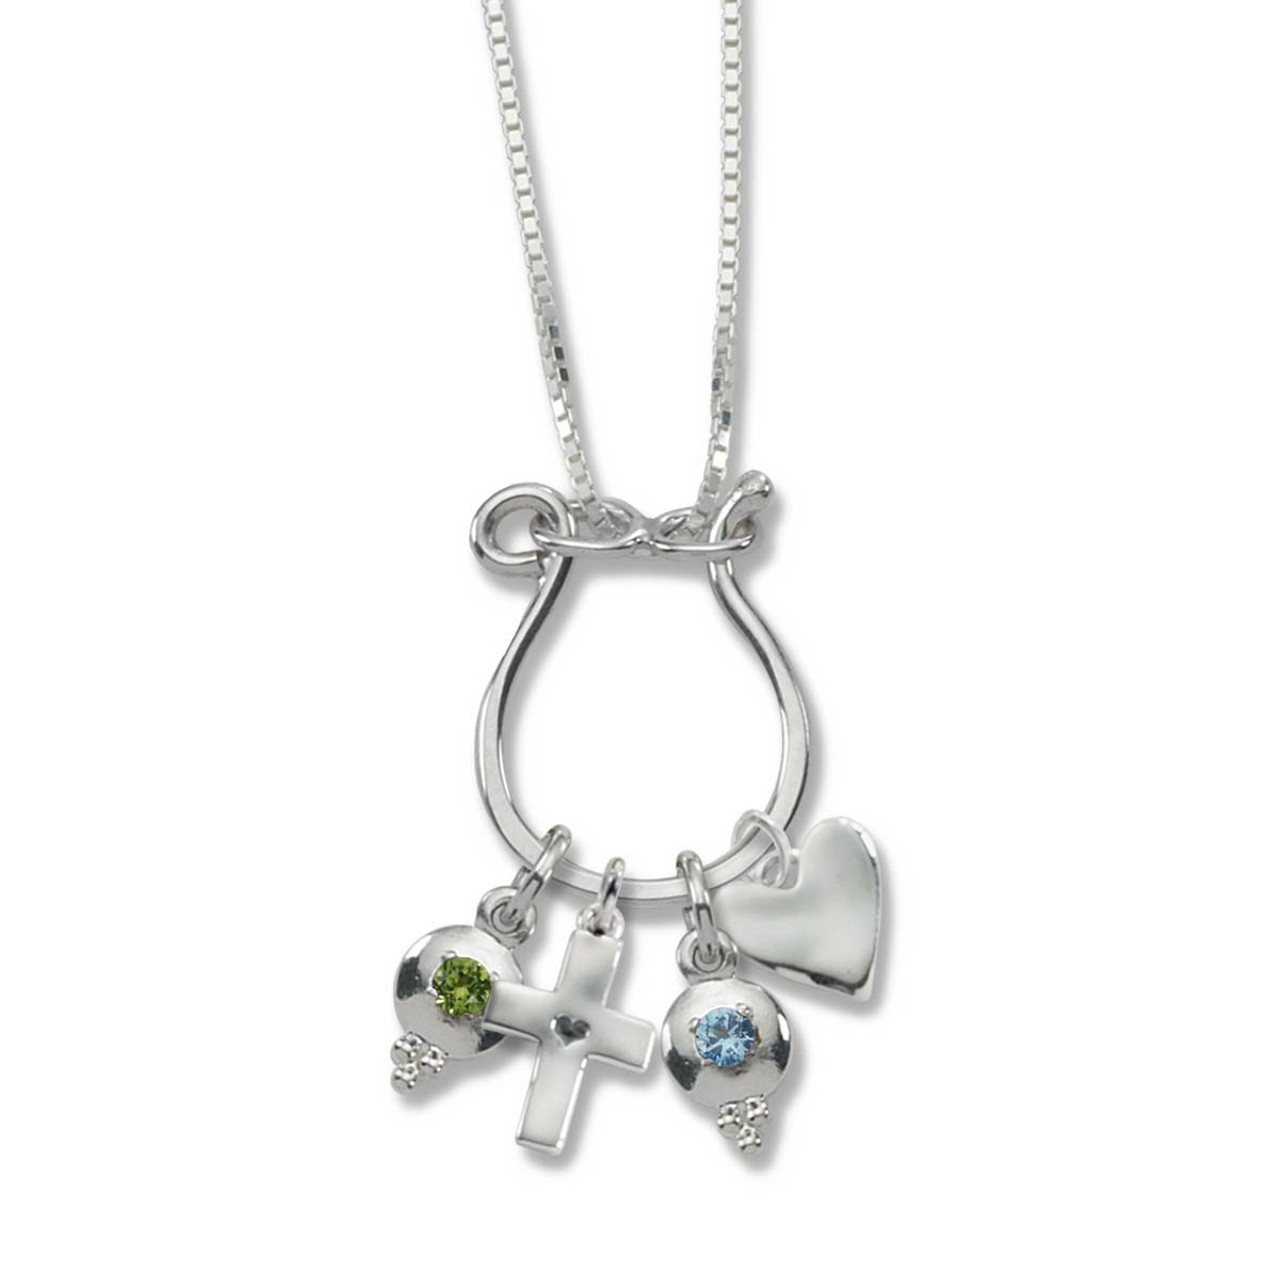 Sterling silver hand forged charm holder necklace jh breakell sterling silver hand forged charm holder necklace mozeypictures Gallery